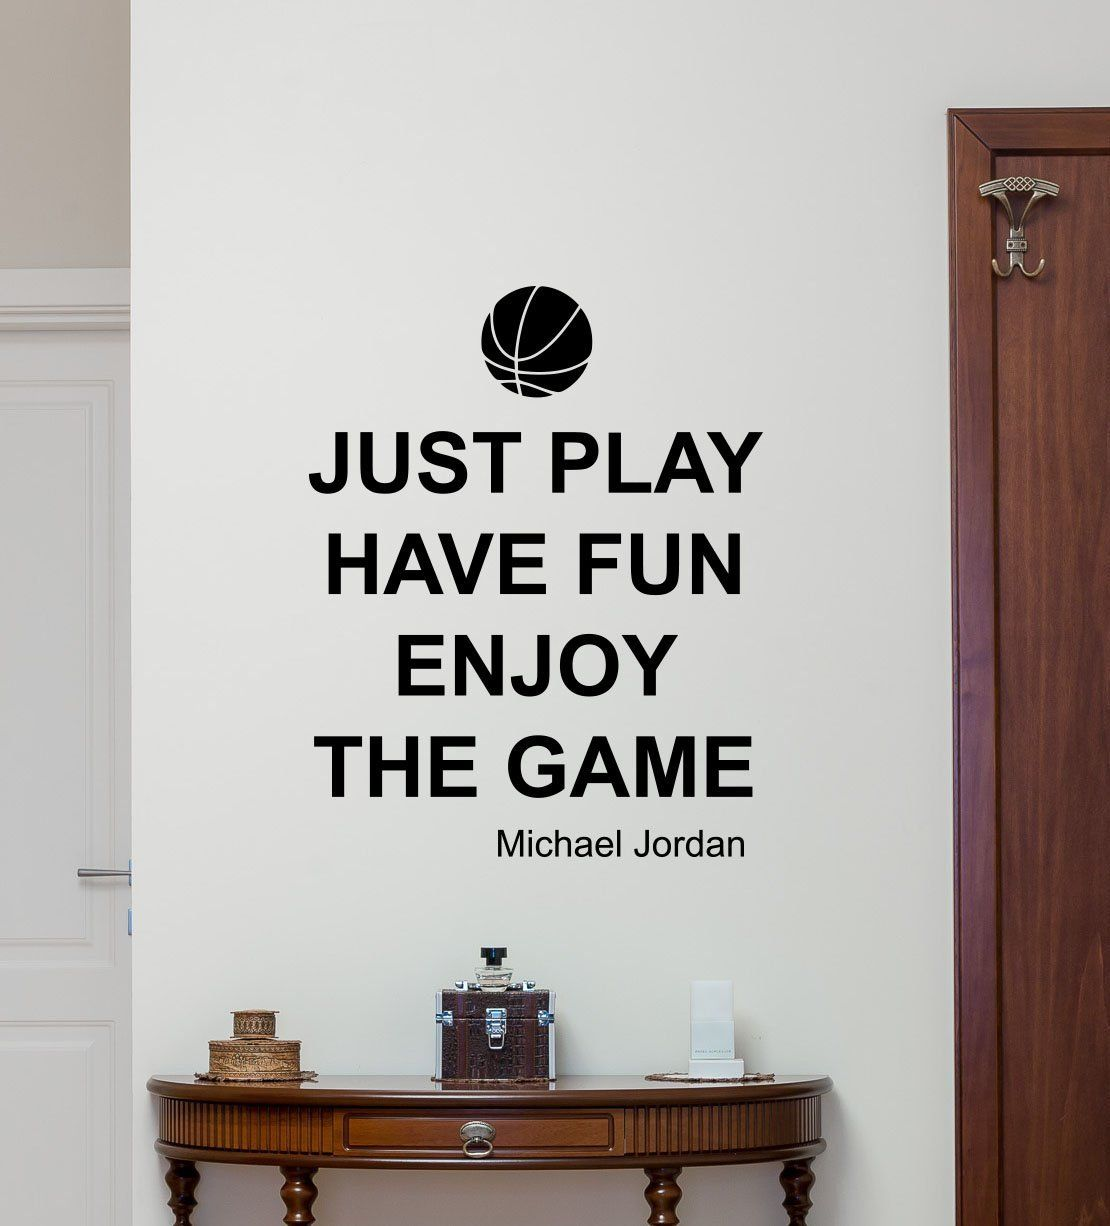 Michael jordan quote wall decal sport air basketball poster michael jordan quote wall decal sport air basketball poster stencil gym wall vinyl sticker kids teen amipublicfo Choice Image